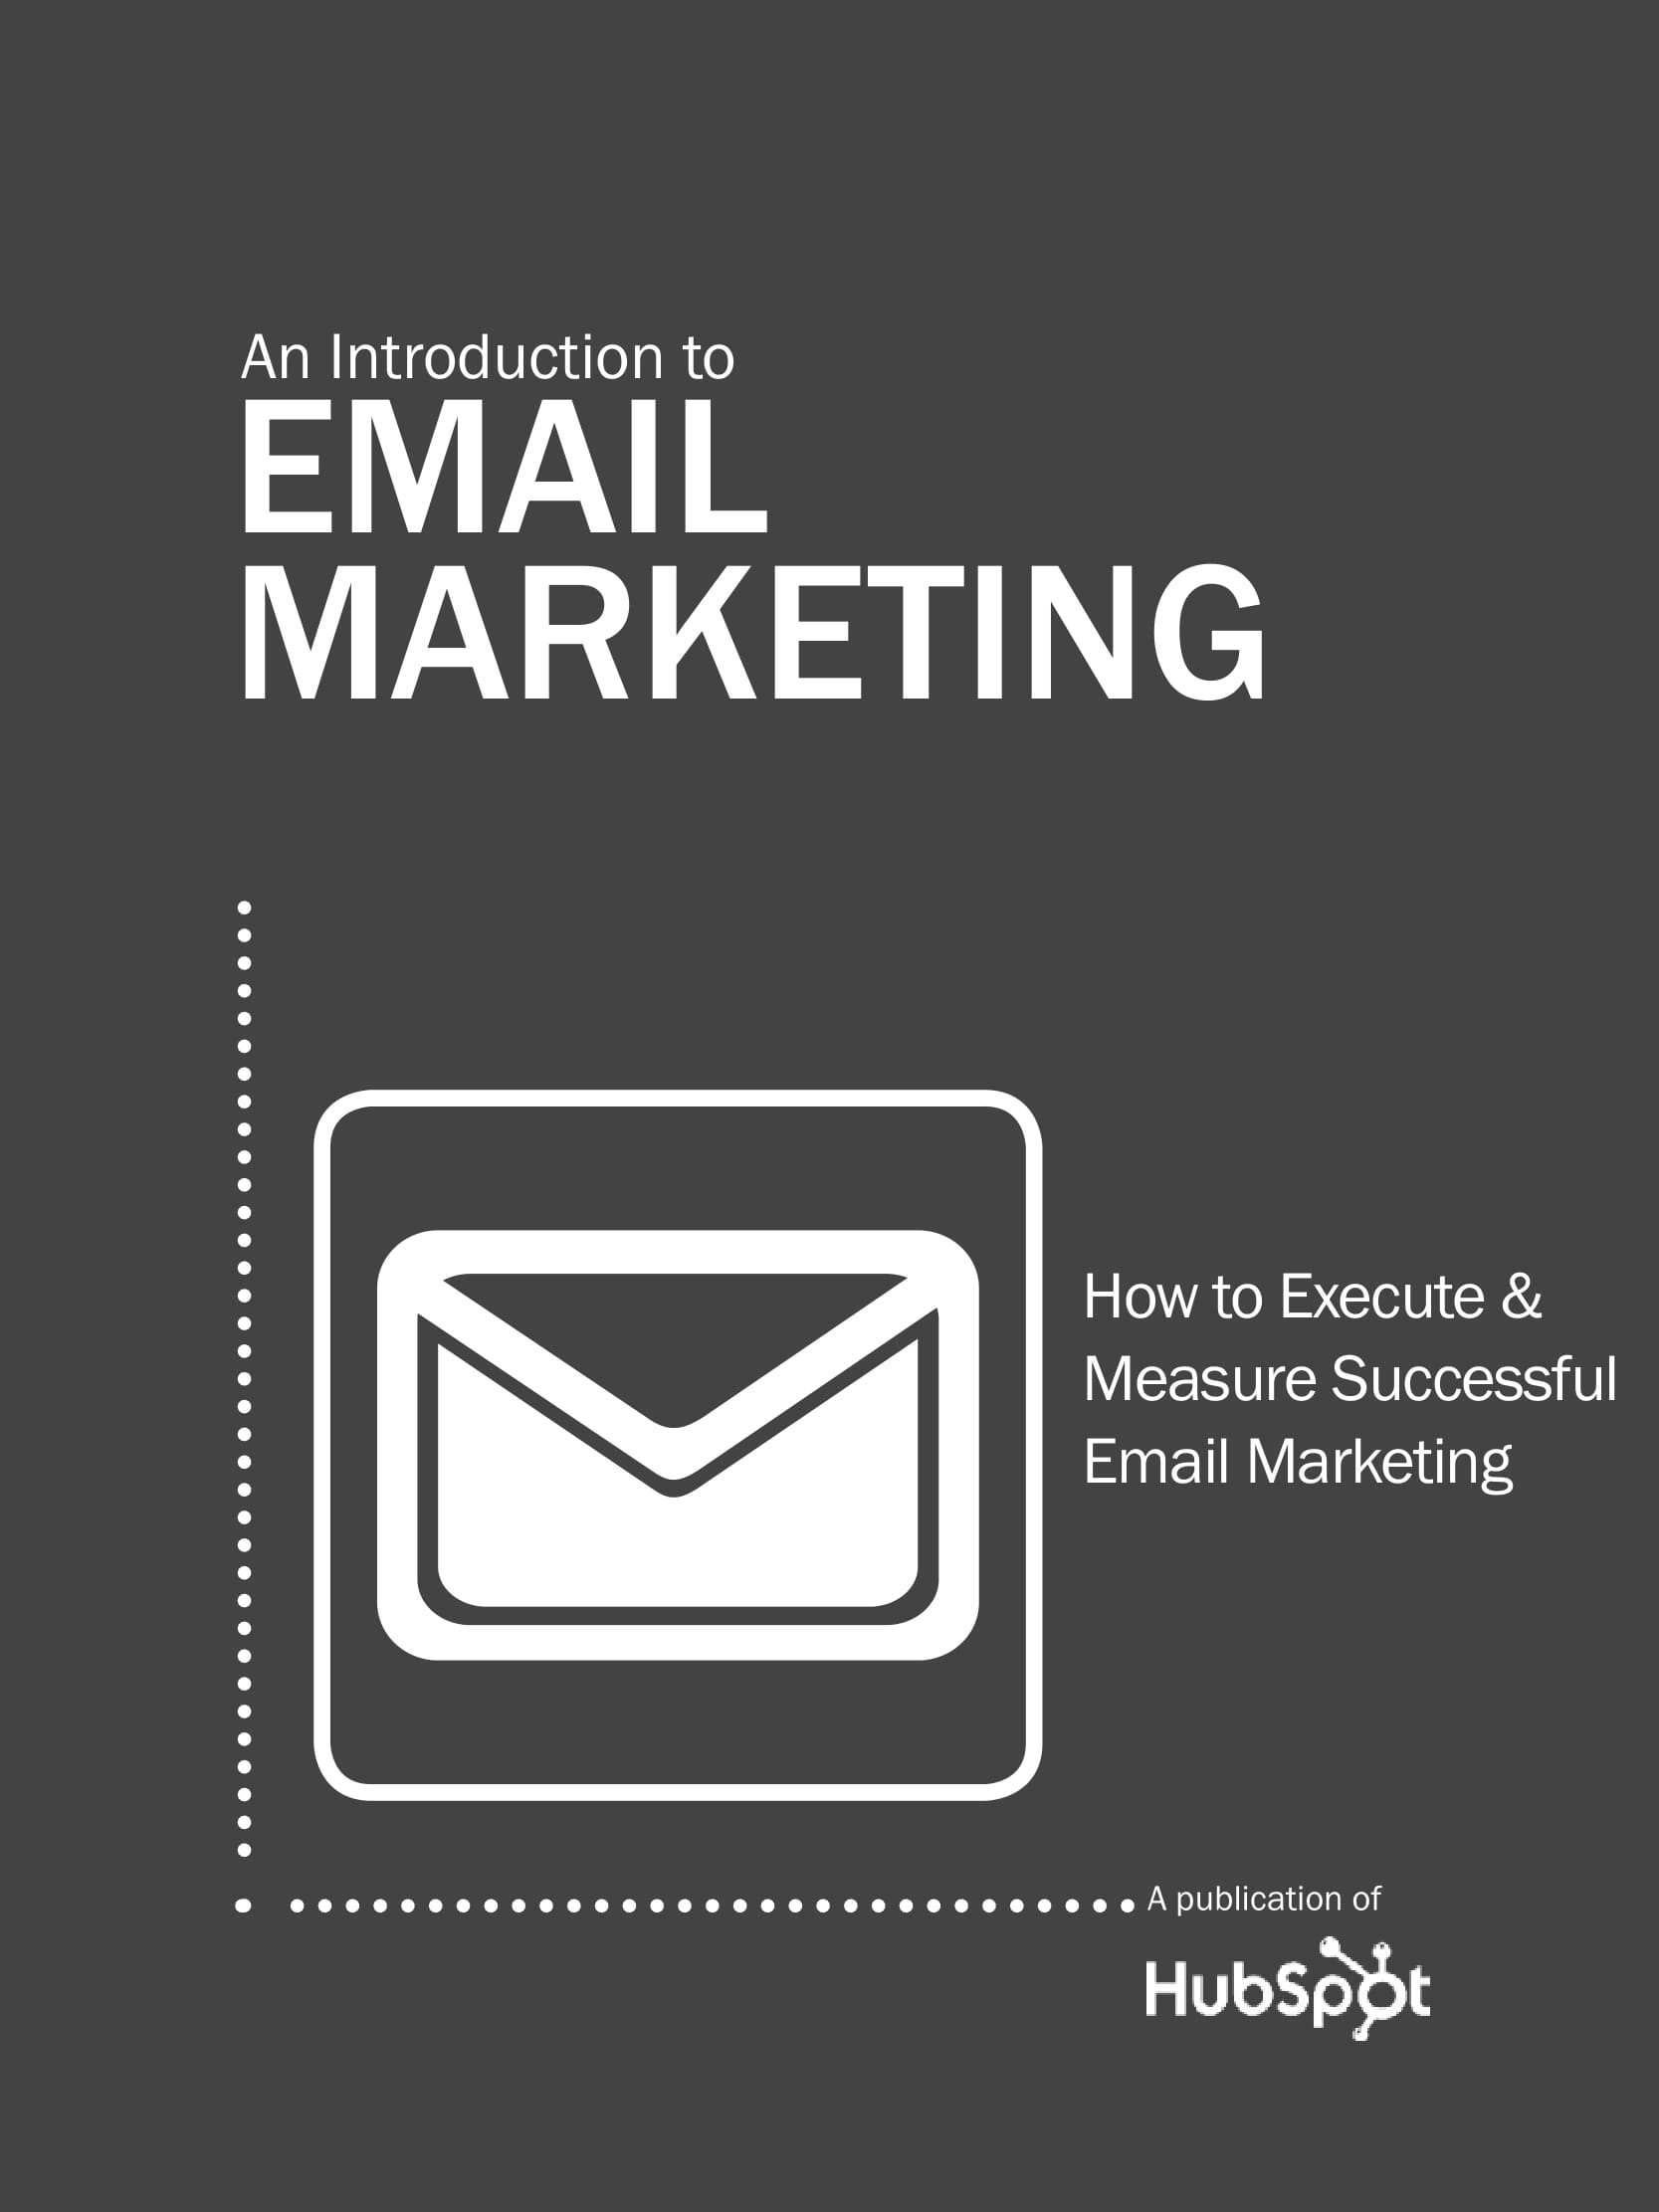 email marketing plan introduction and execution example 01